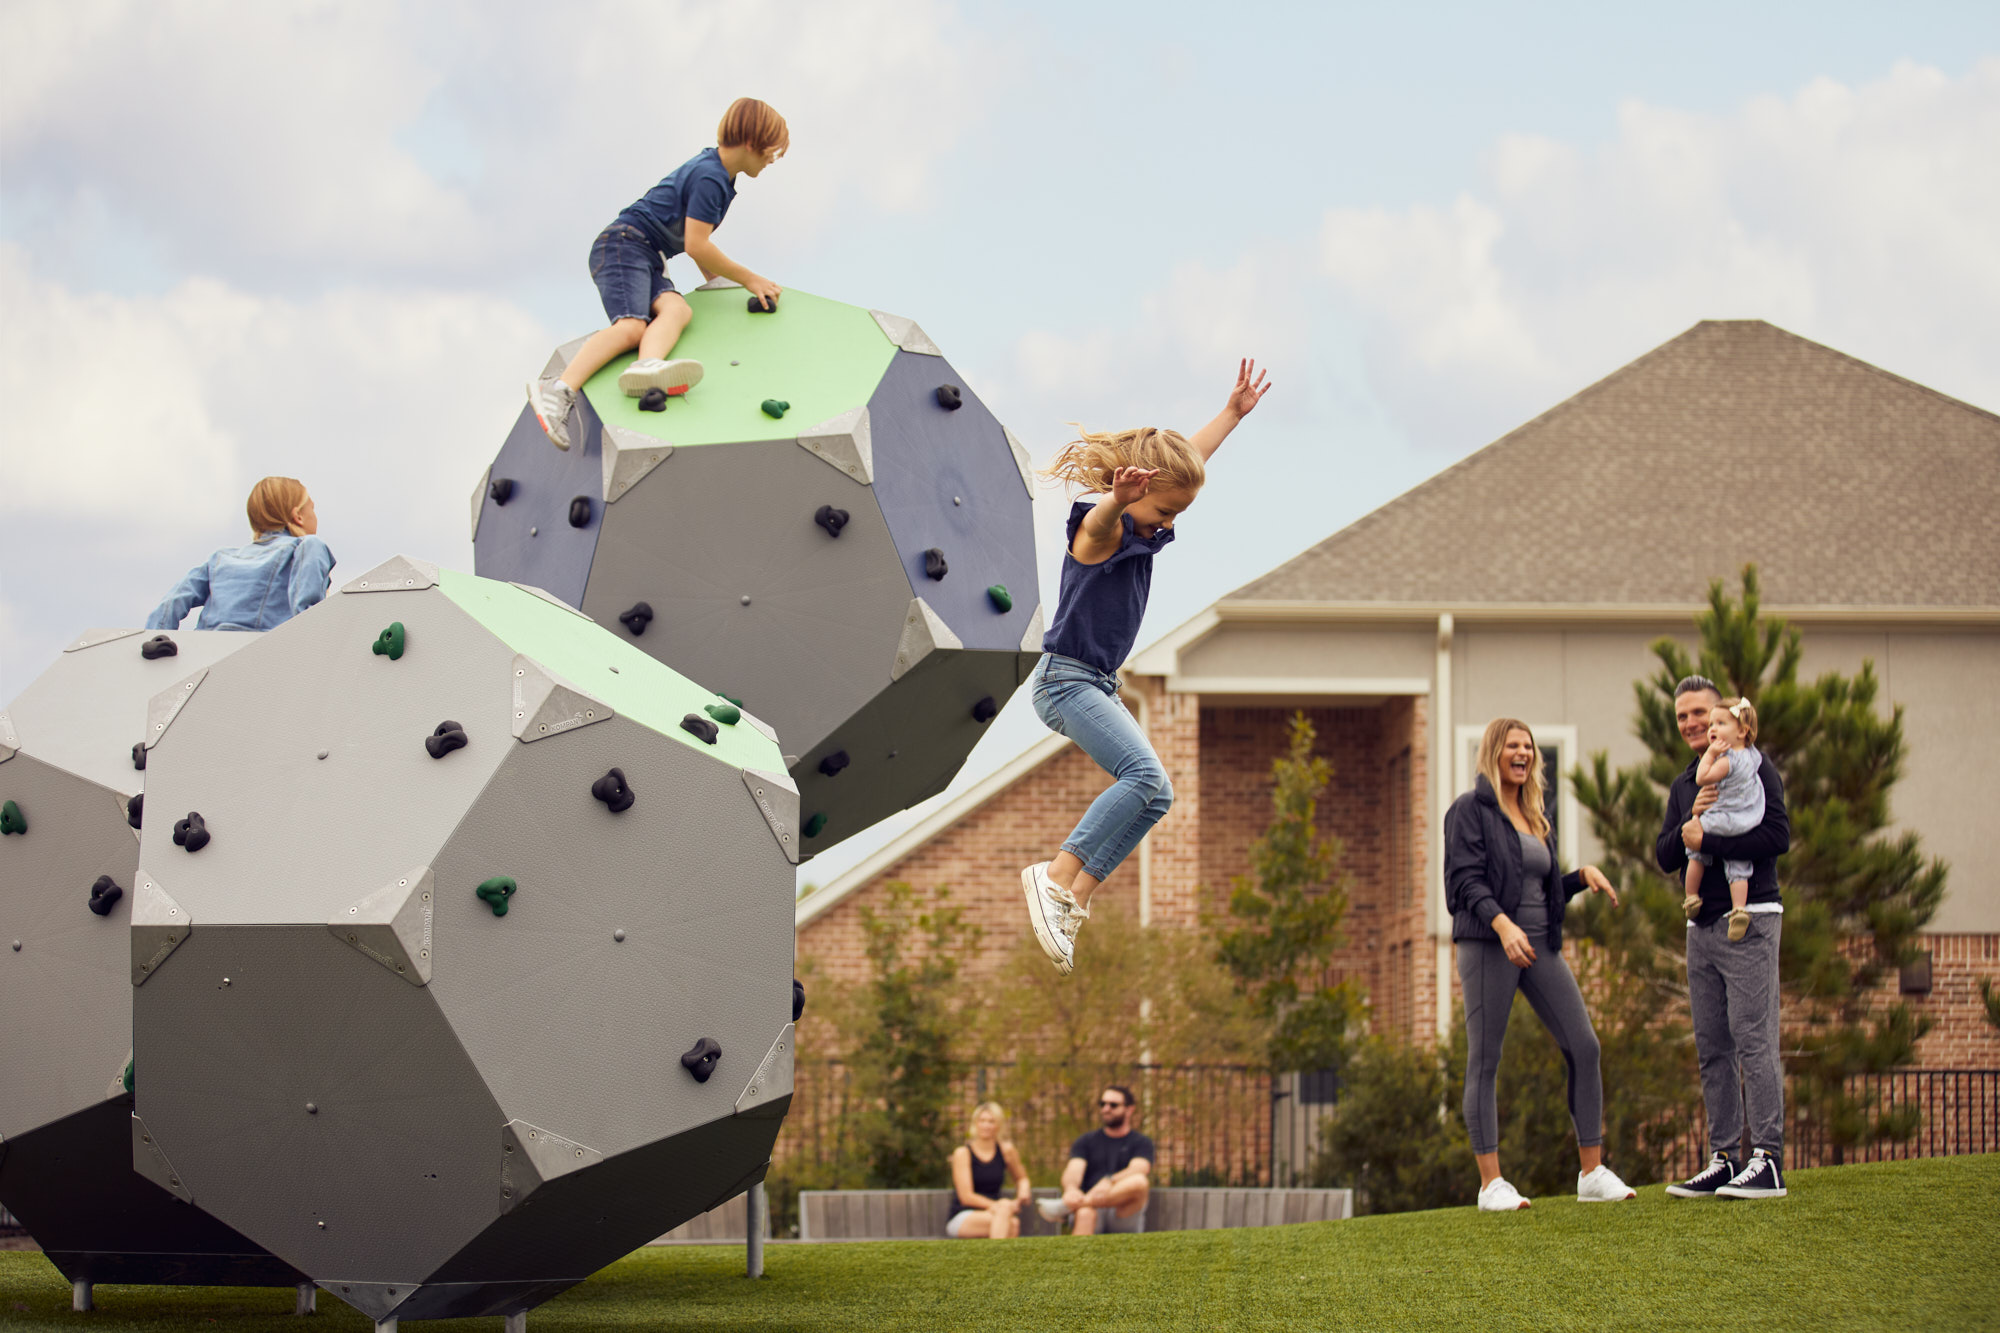 Playground Fun | Lifestyle Photography